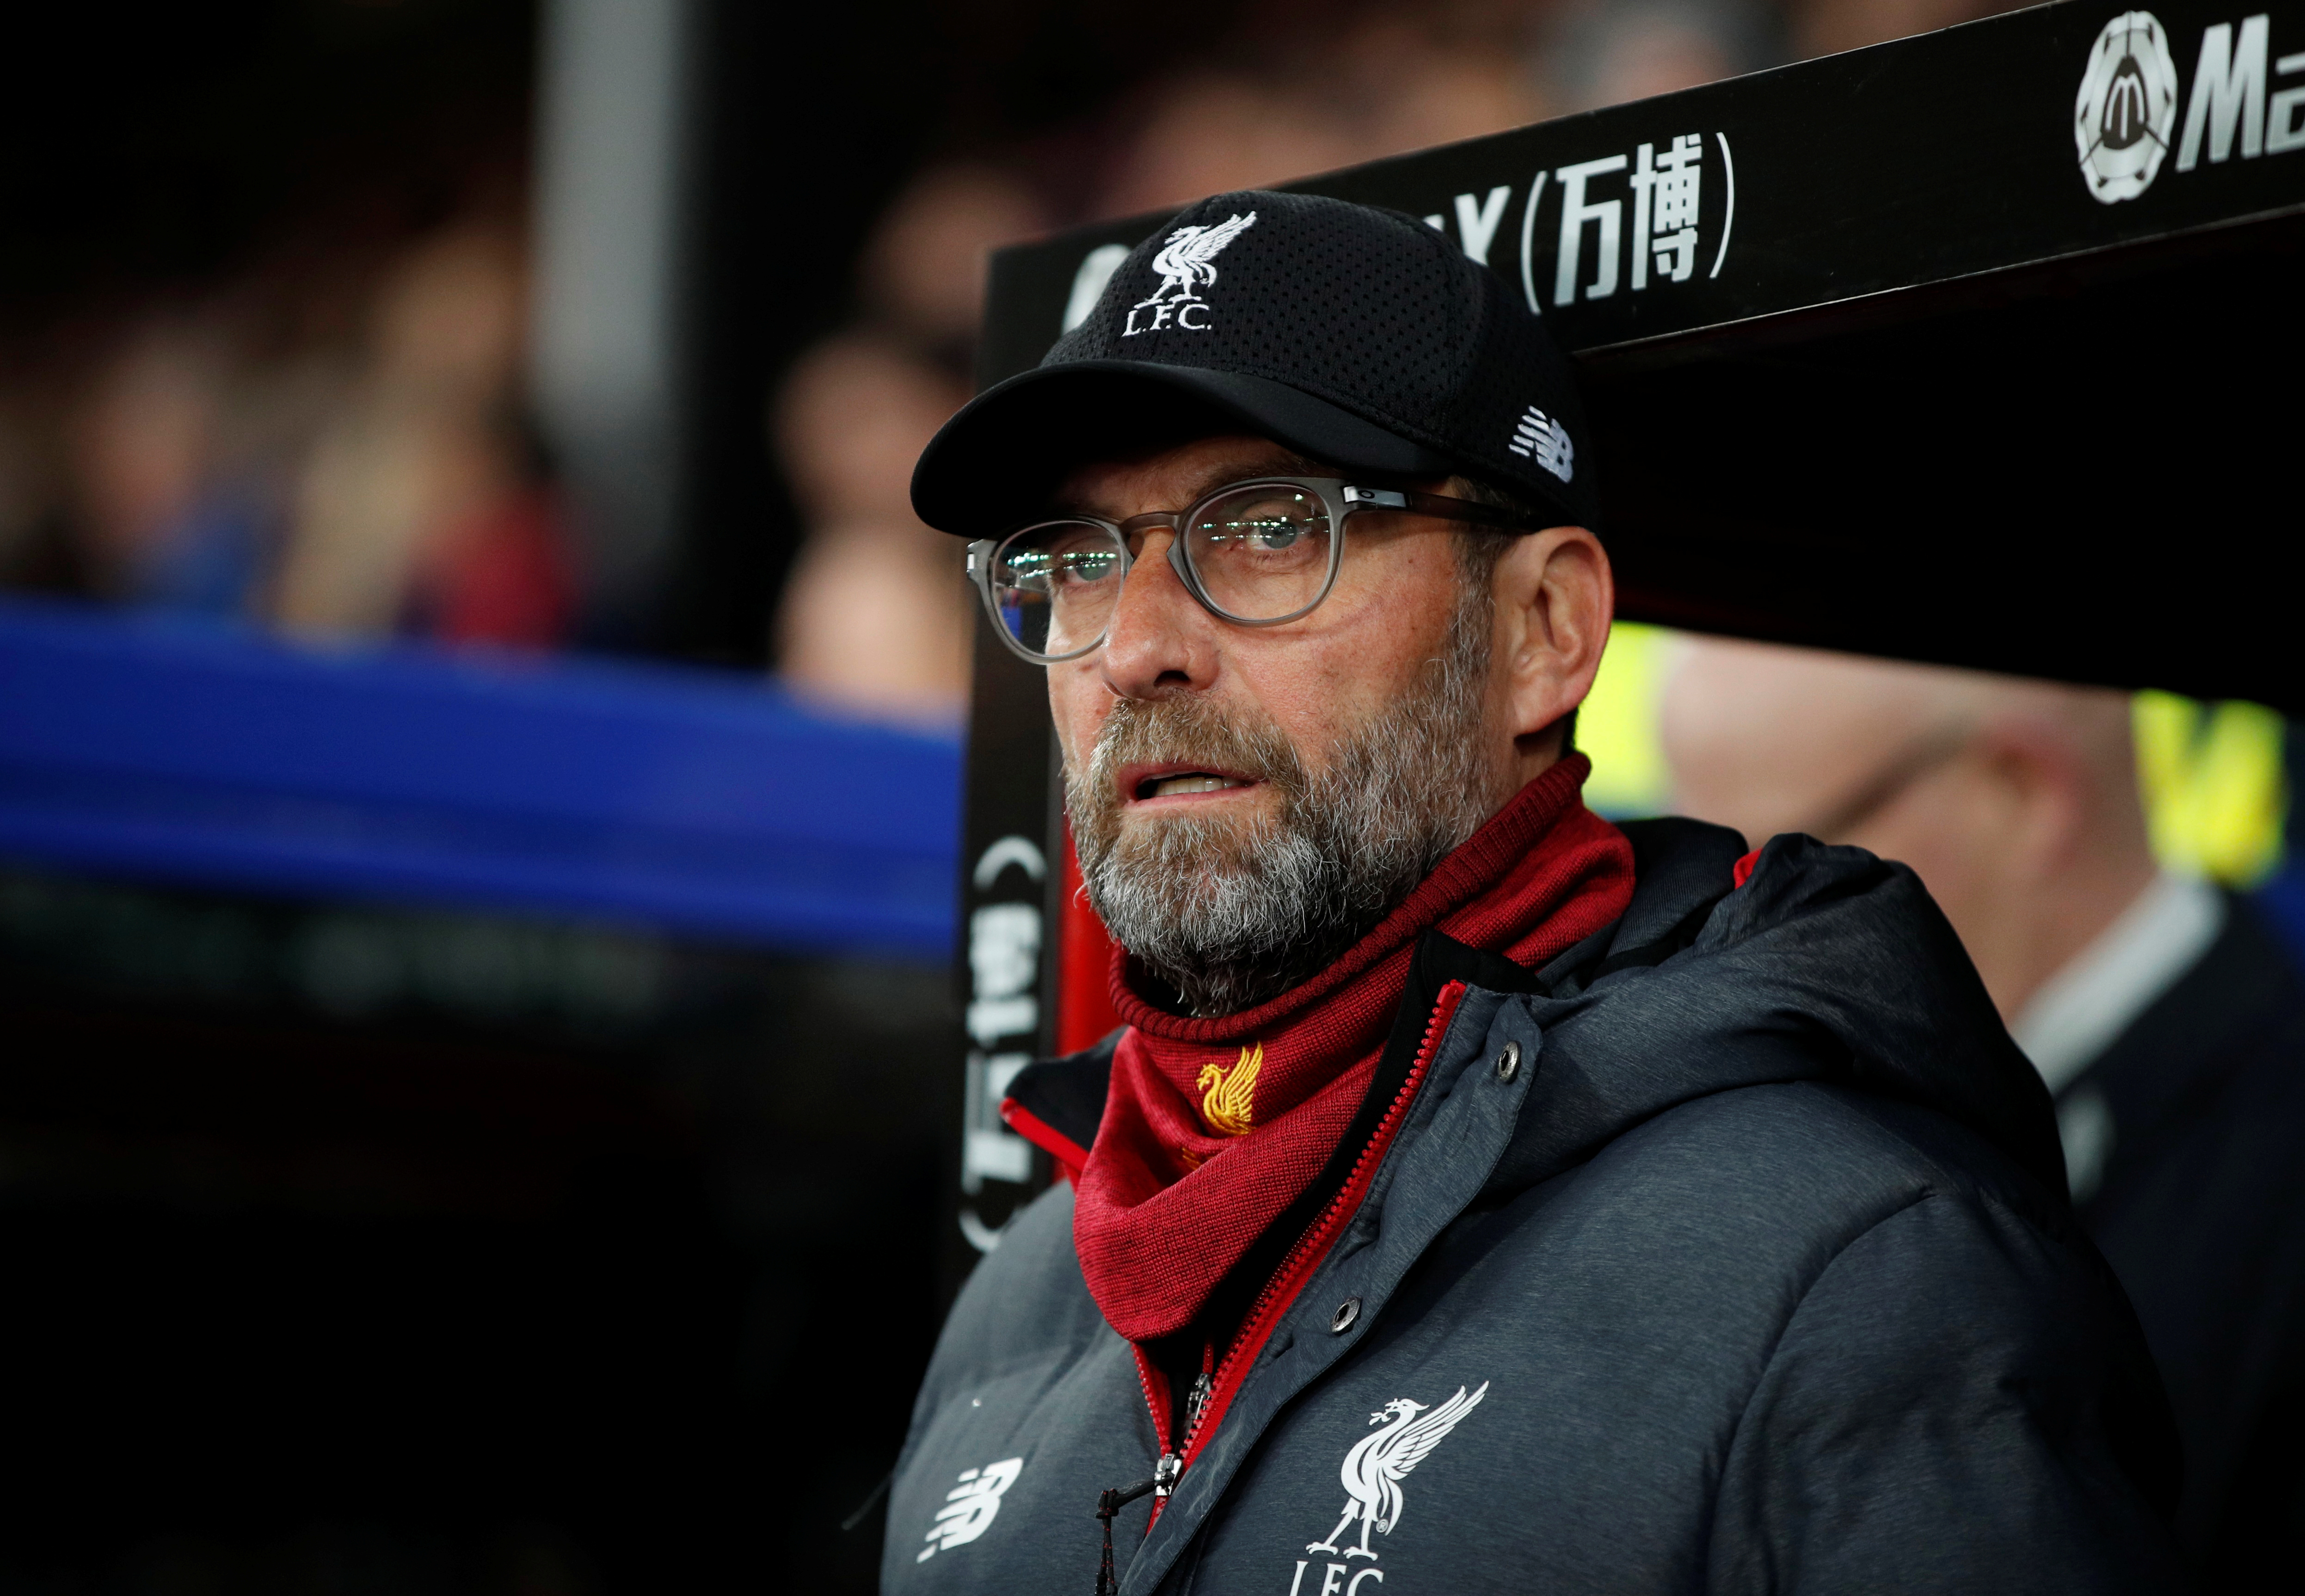 Klopp does not care about PL rivals